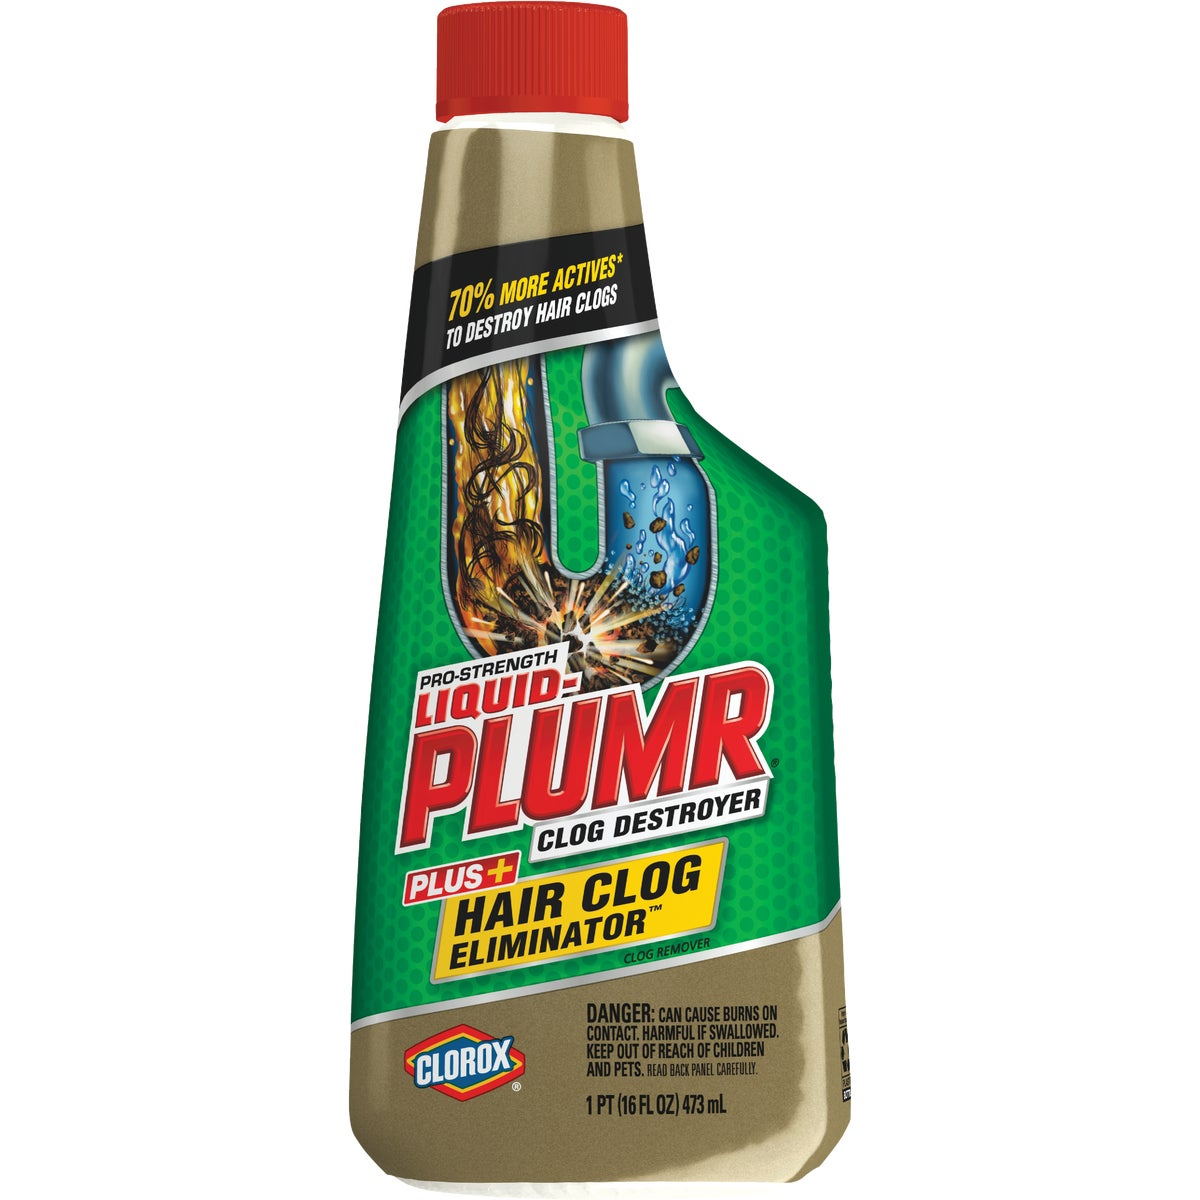 DBL IMPACT LIQUID-PLUMR - 30708 by Clorox/home Cleaning